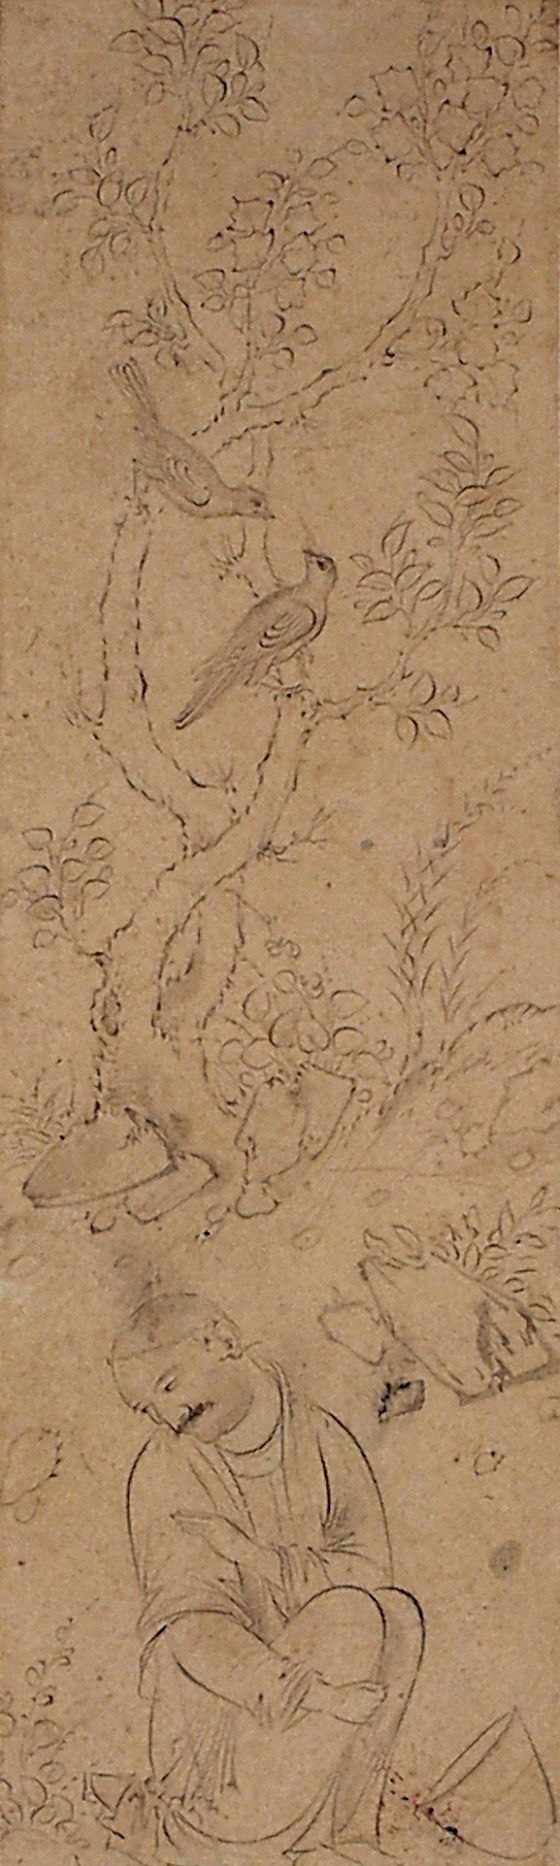 Seated Man in a Landscape Iran, Qazwin, circa 1590 Ink on paper 6 7/8 x 2 1/8 in. (17.5 x 5.25 cm) LACMA Collections